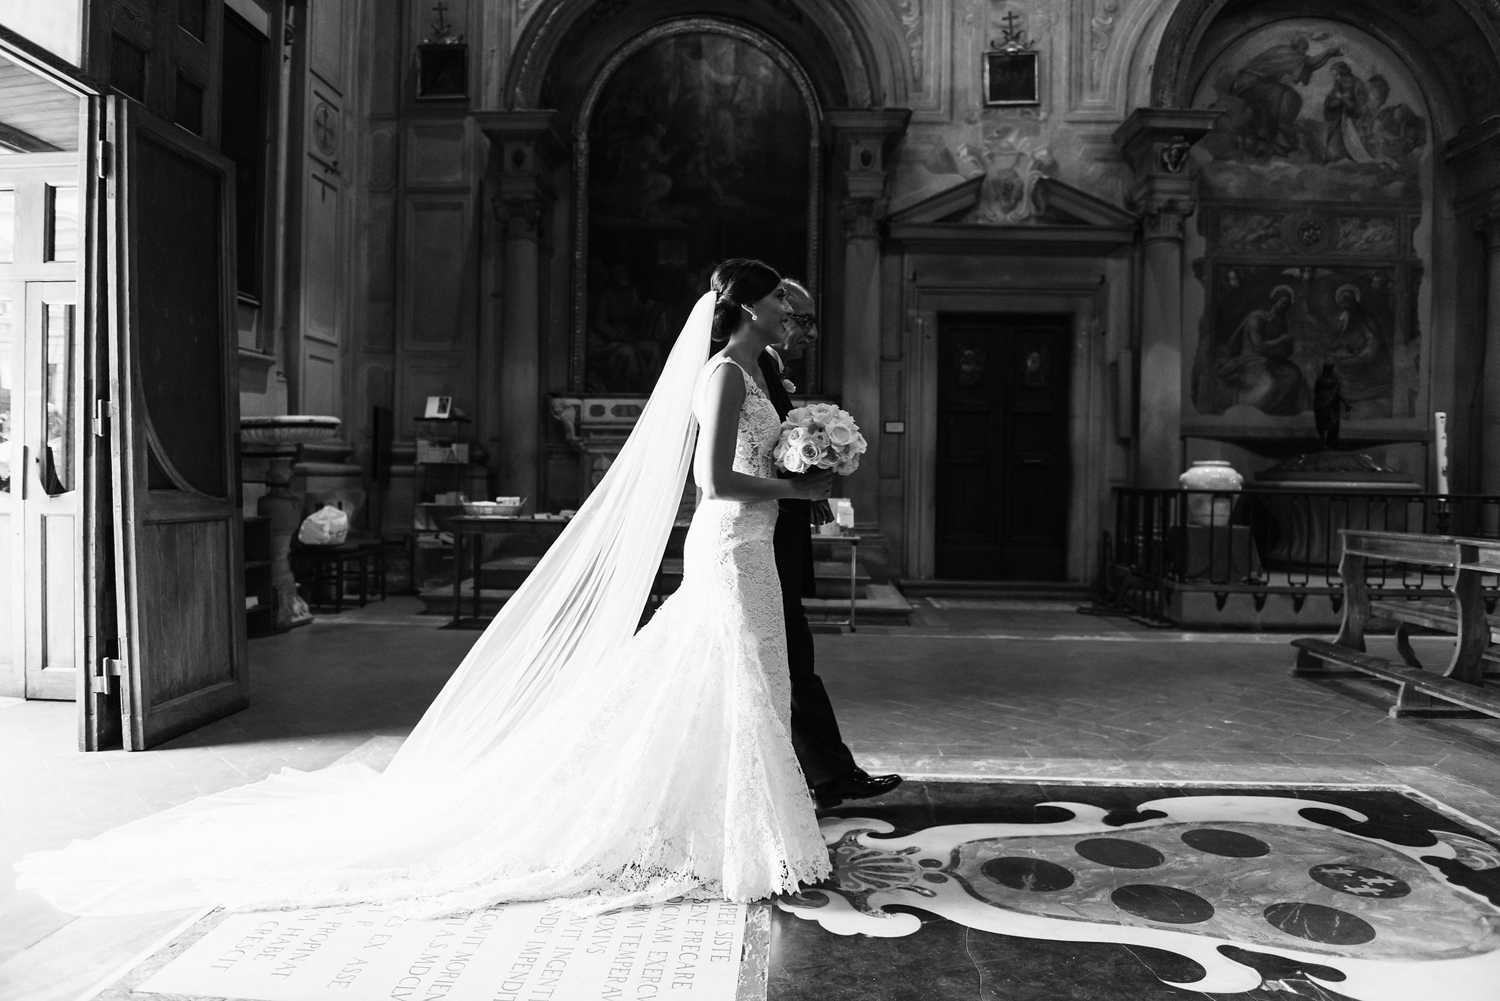 katie_mitchell_wedding_florence_tuscany_villa_di_miano_wedding_photography_23.jpg